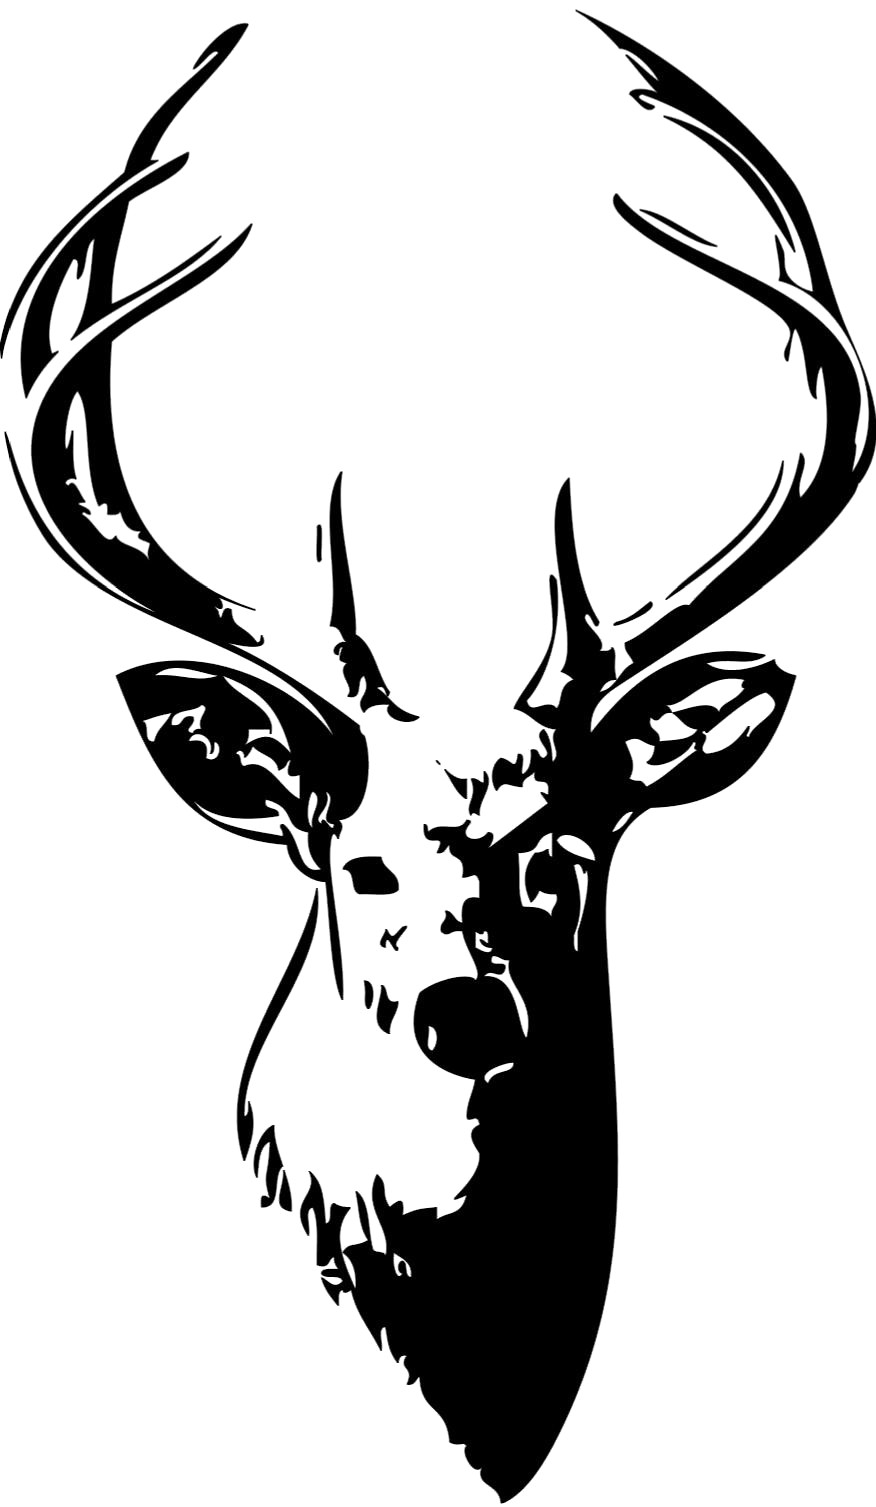 Deer head clipart black and white 2 » Clipart Station.